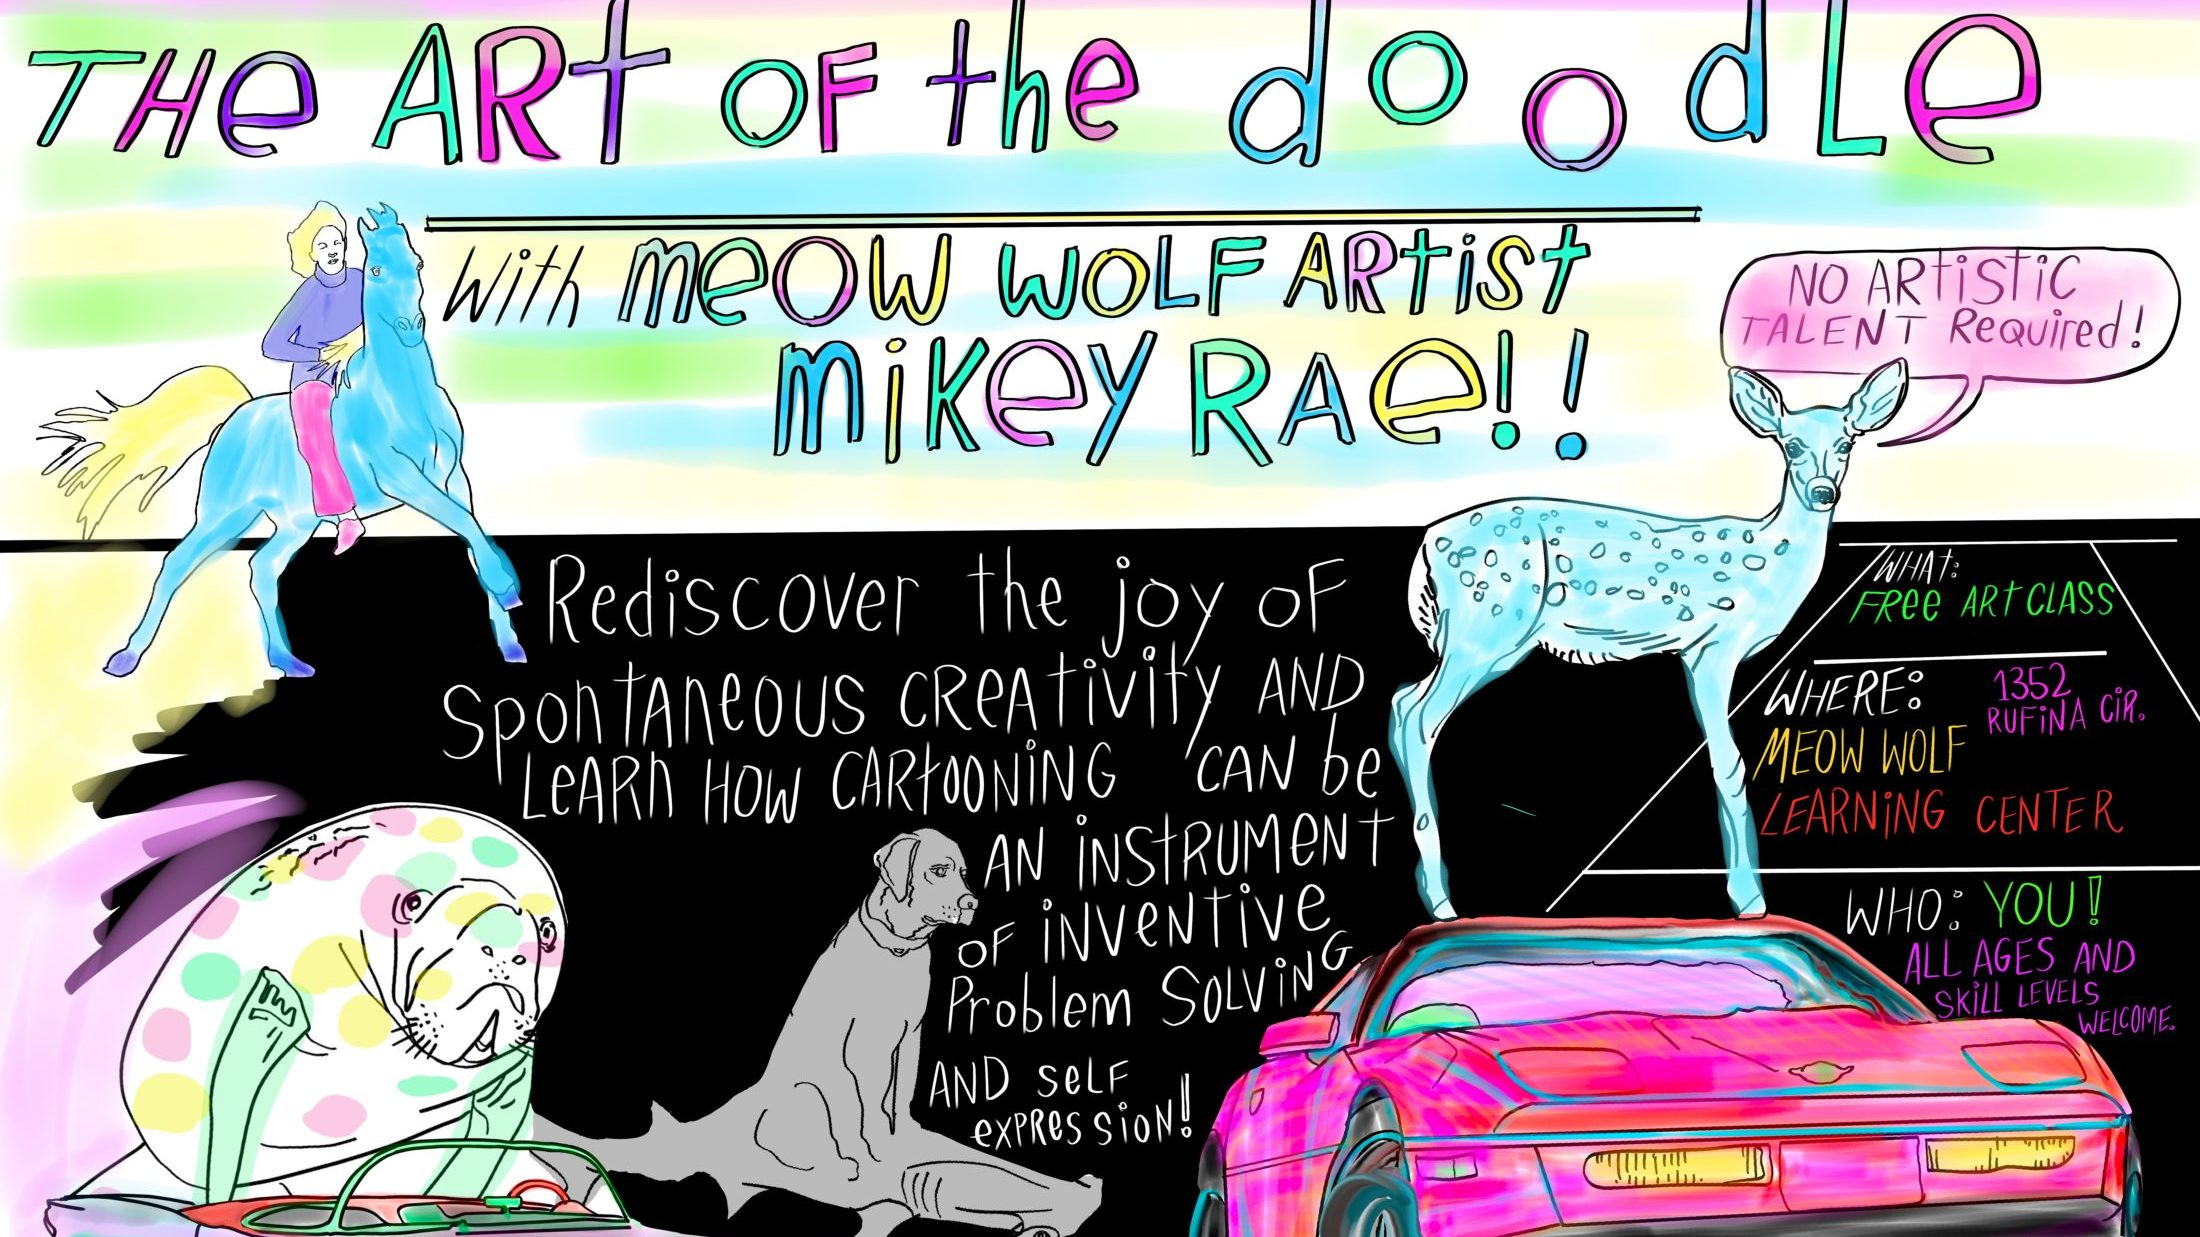 The Art of the Doodle with Meow Wolf artist Mikey Rae